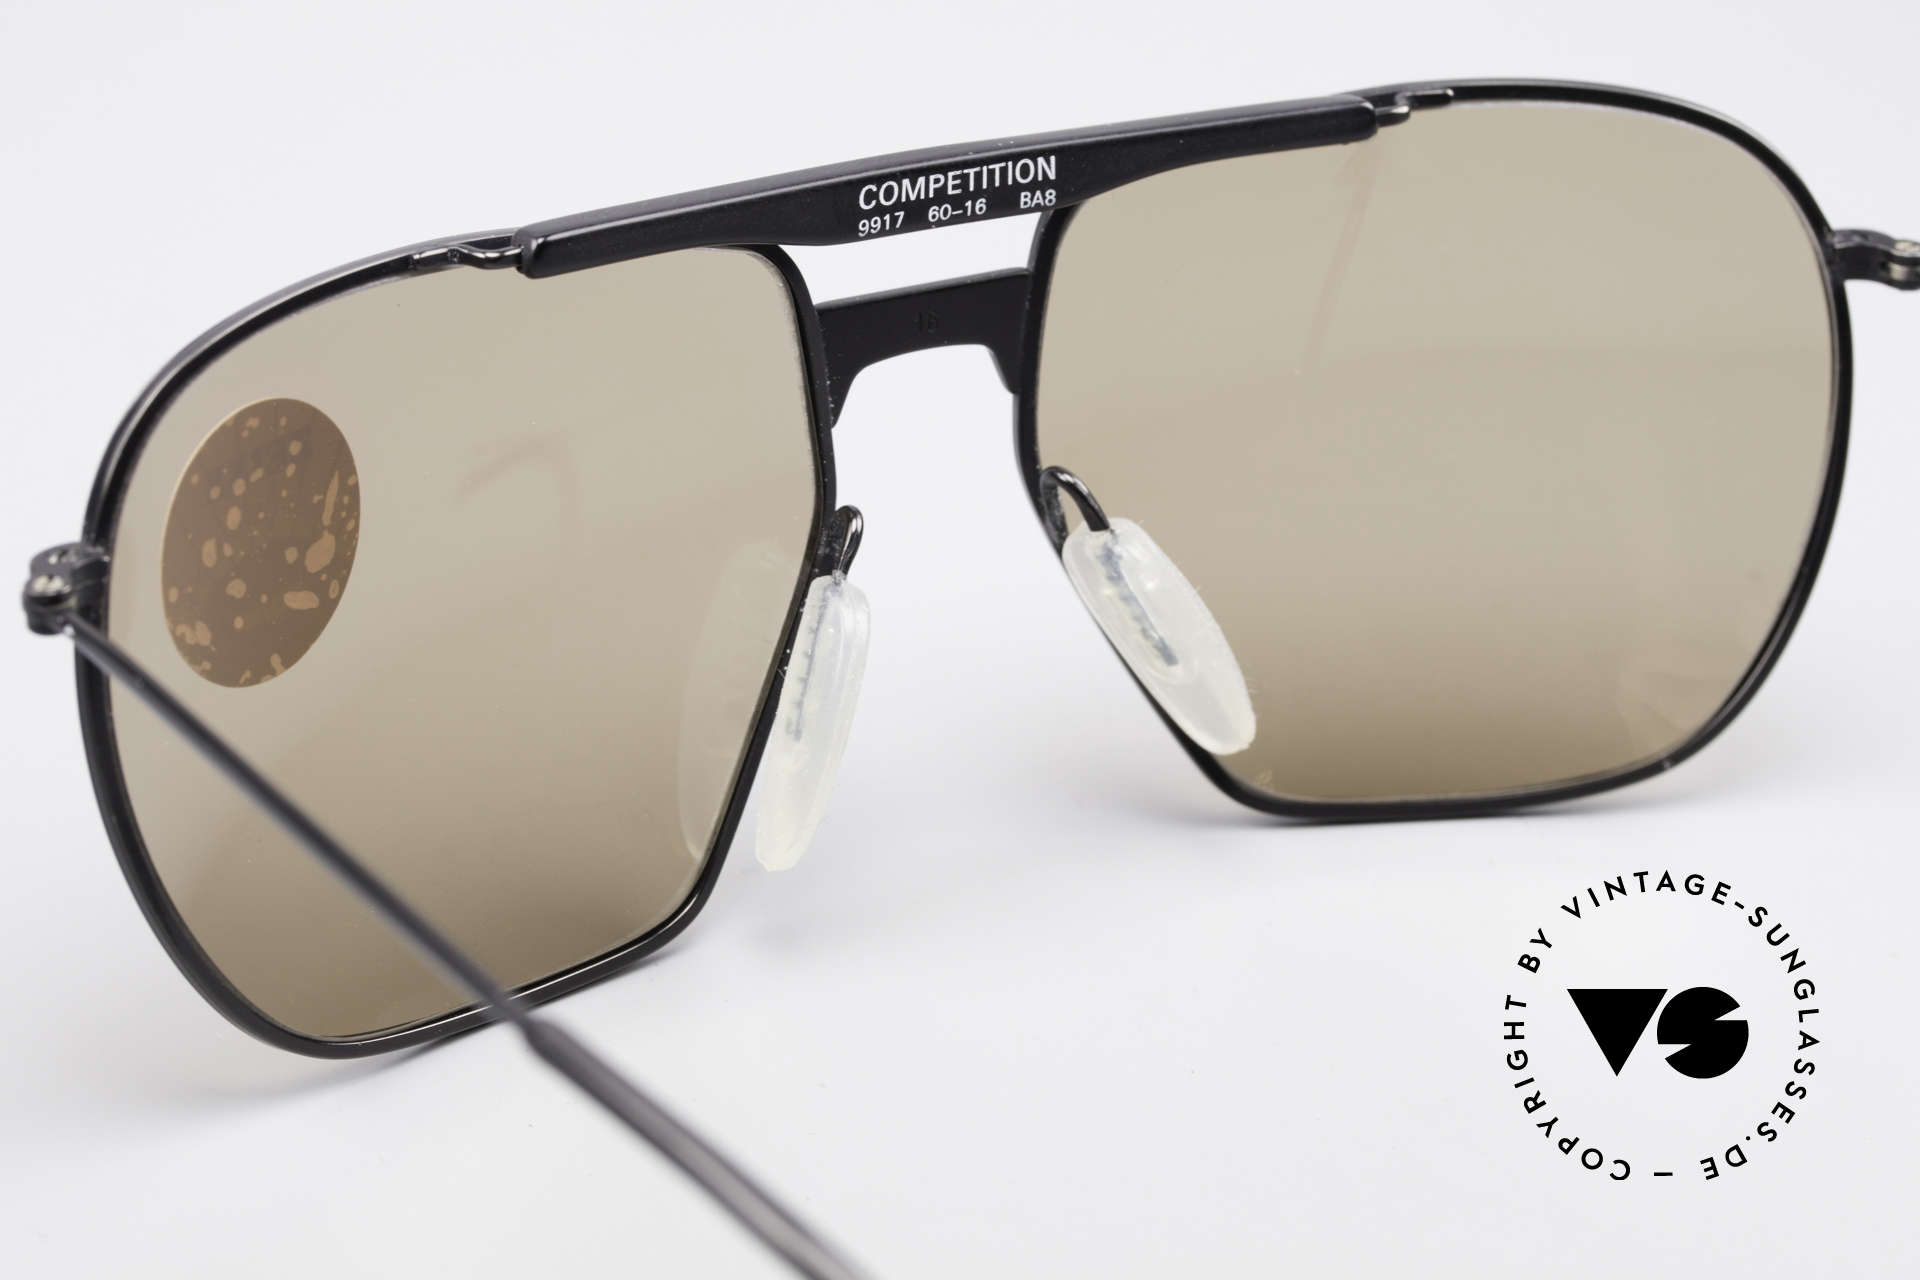 Zeiss 9911 Sport Vintage Sunglasses 80's, NO RETRO shades; but an old original from the 1980's, Made for Men